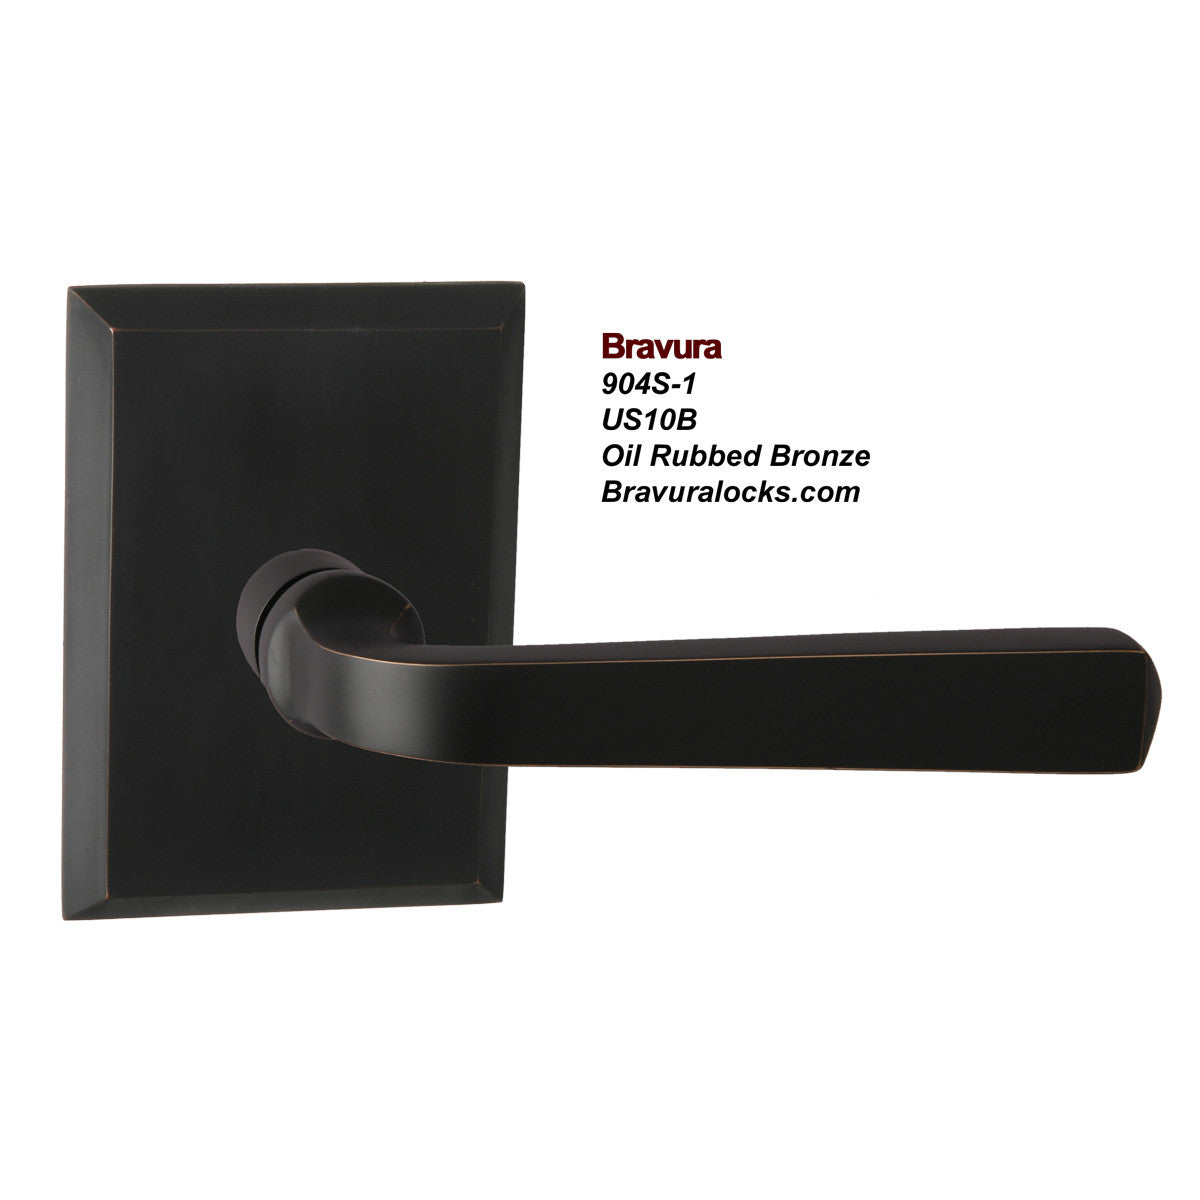 Oil rubbed bronze door levers -  Bravura 904s 1 Interior Door Lever Privacy Passage Bedroom Bathroom